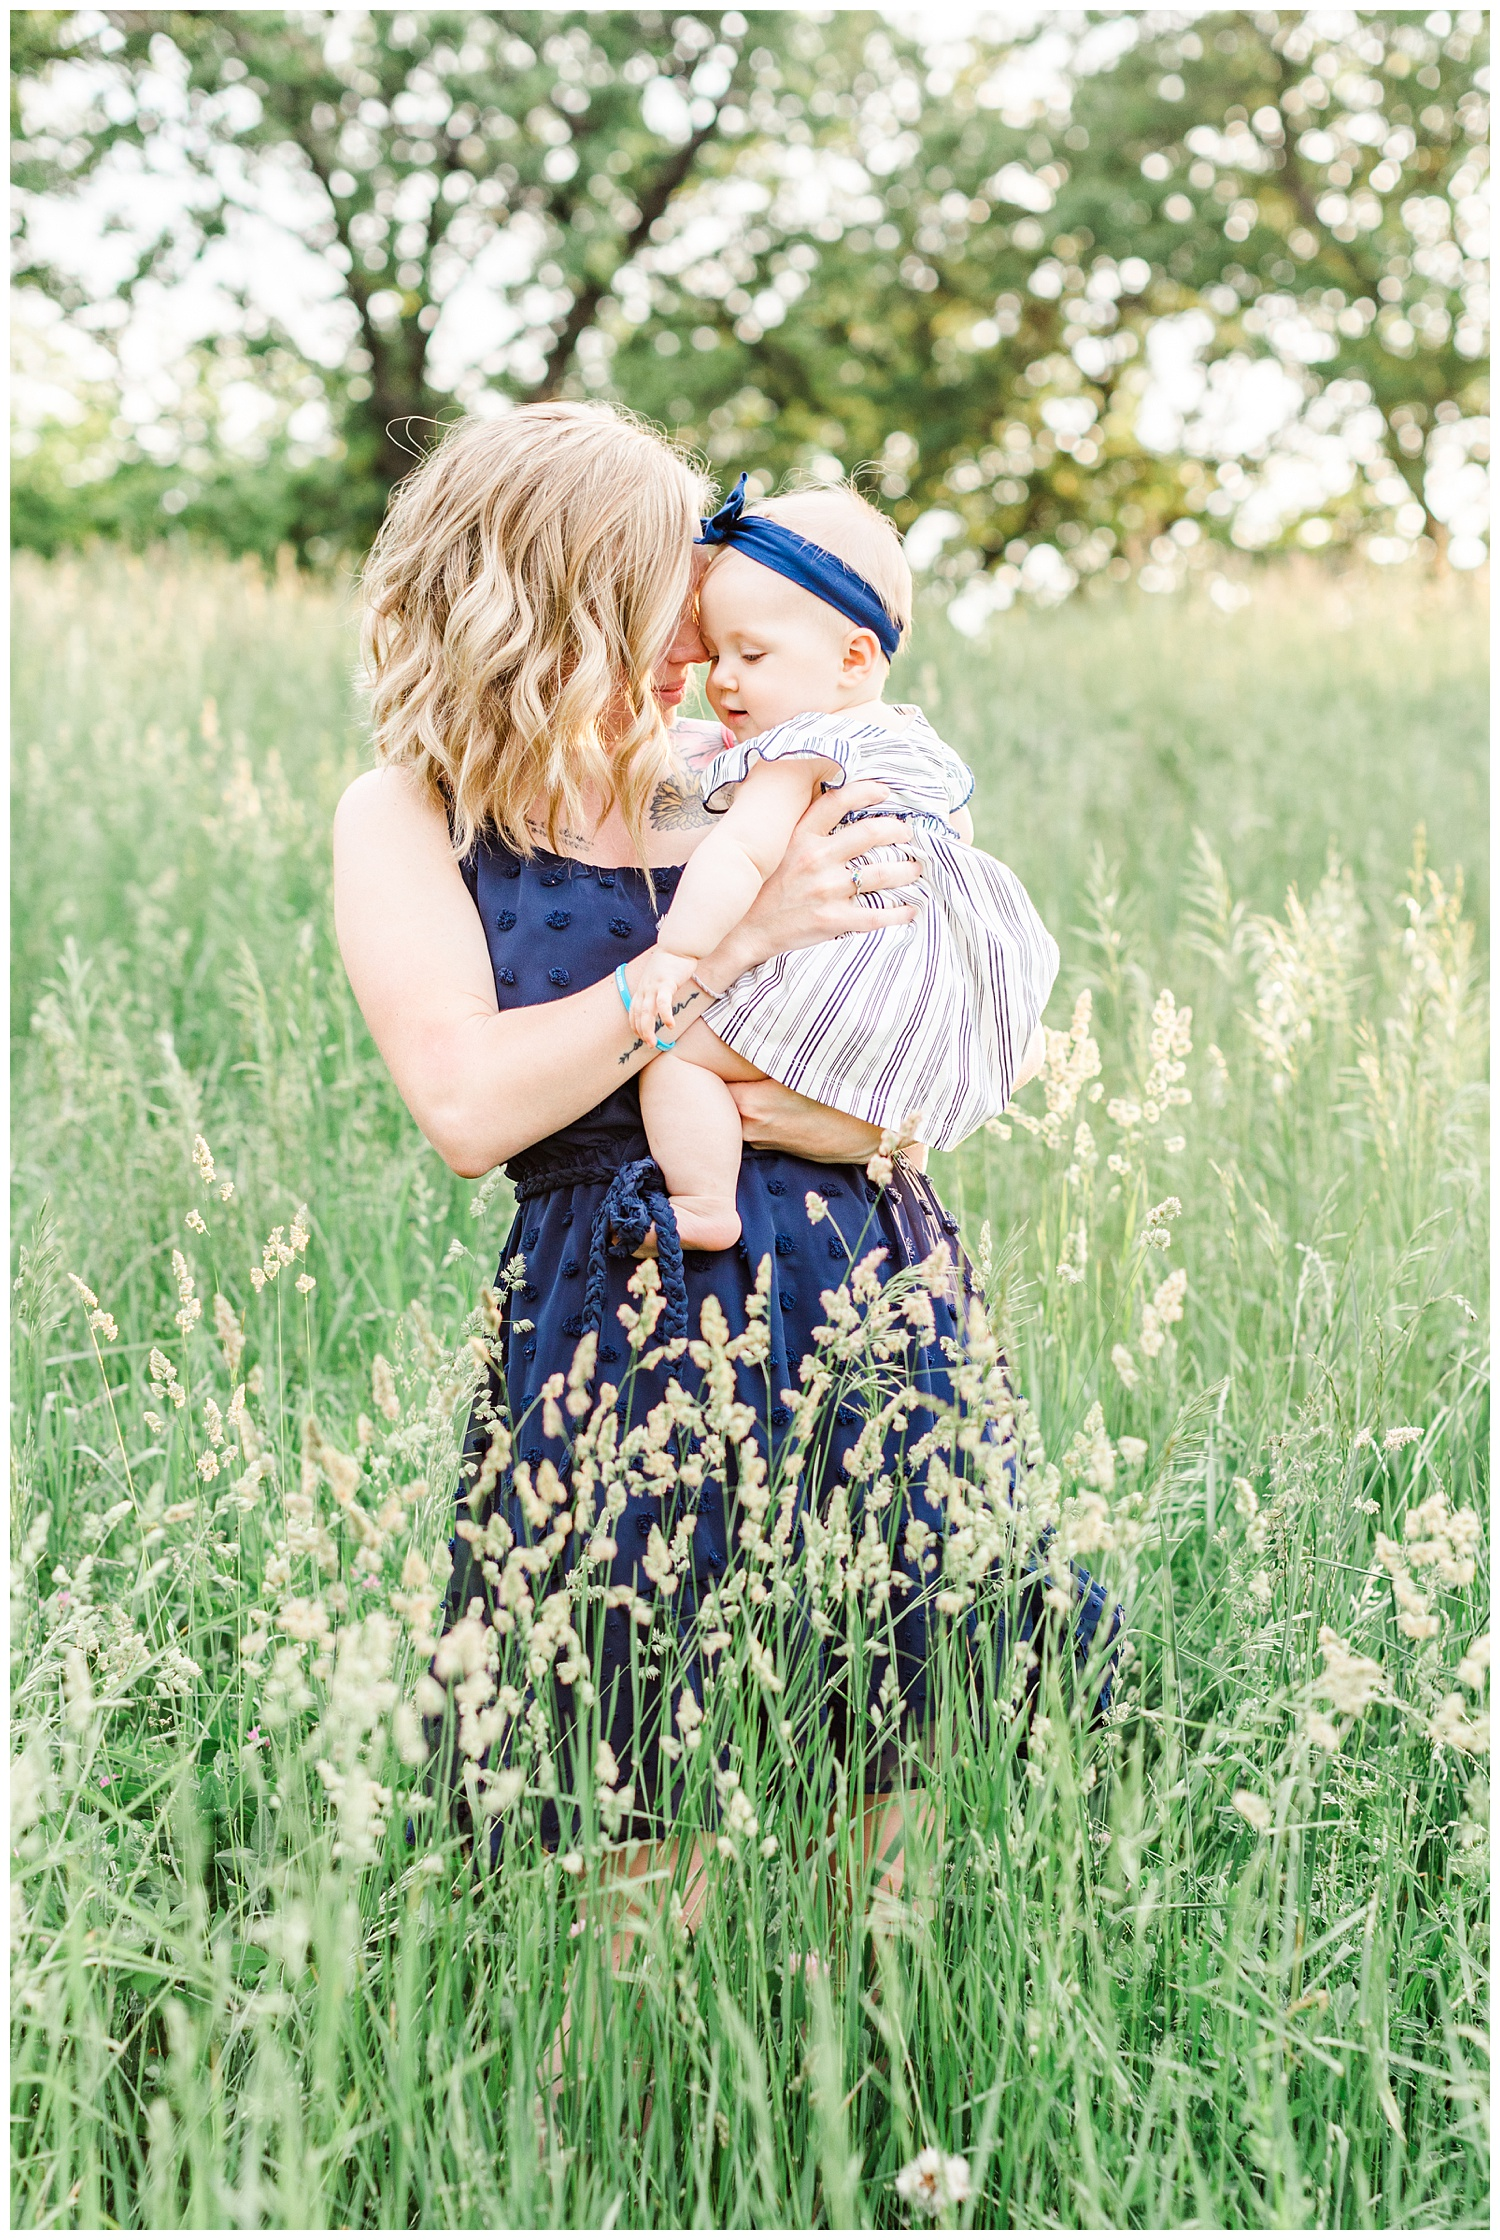 Mama embraces her baby girl at holden hour in a grassy field in Iowa | CB Studio